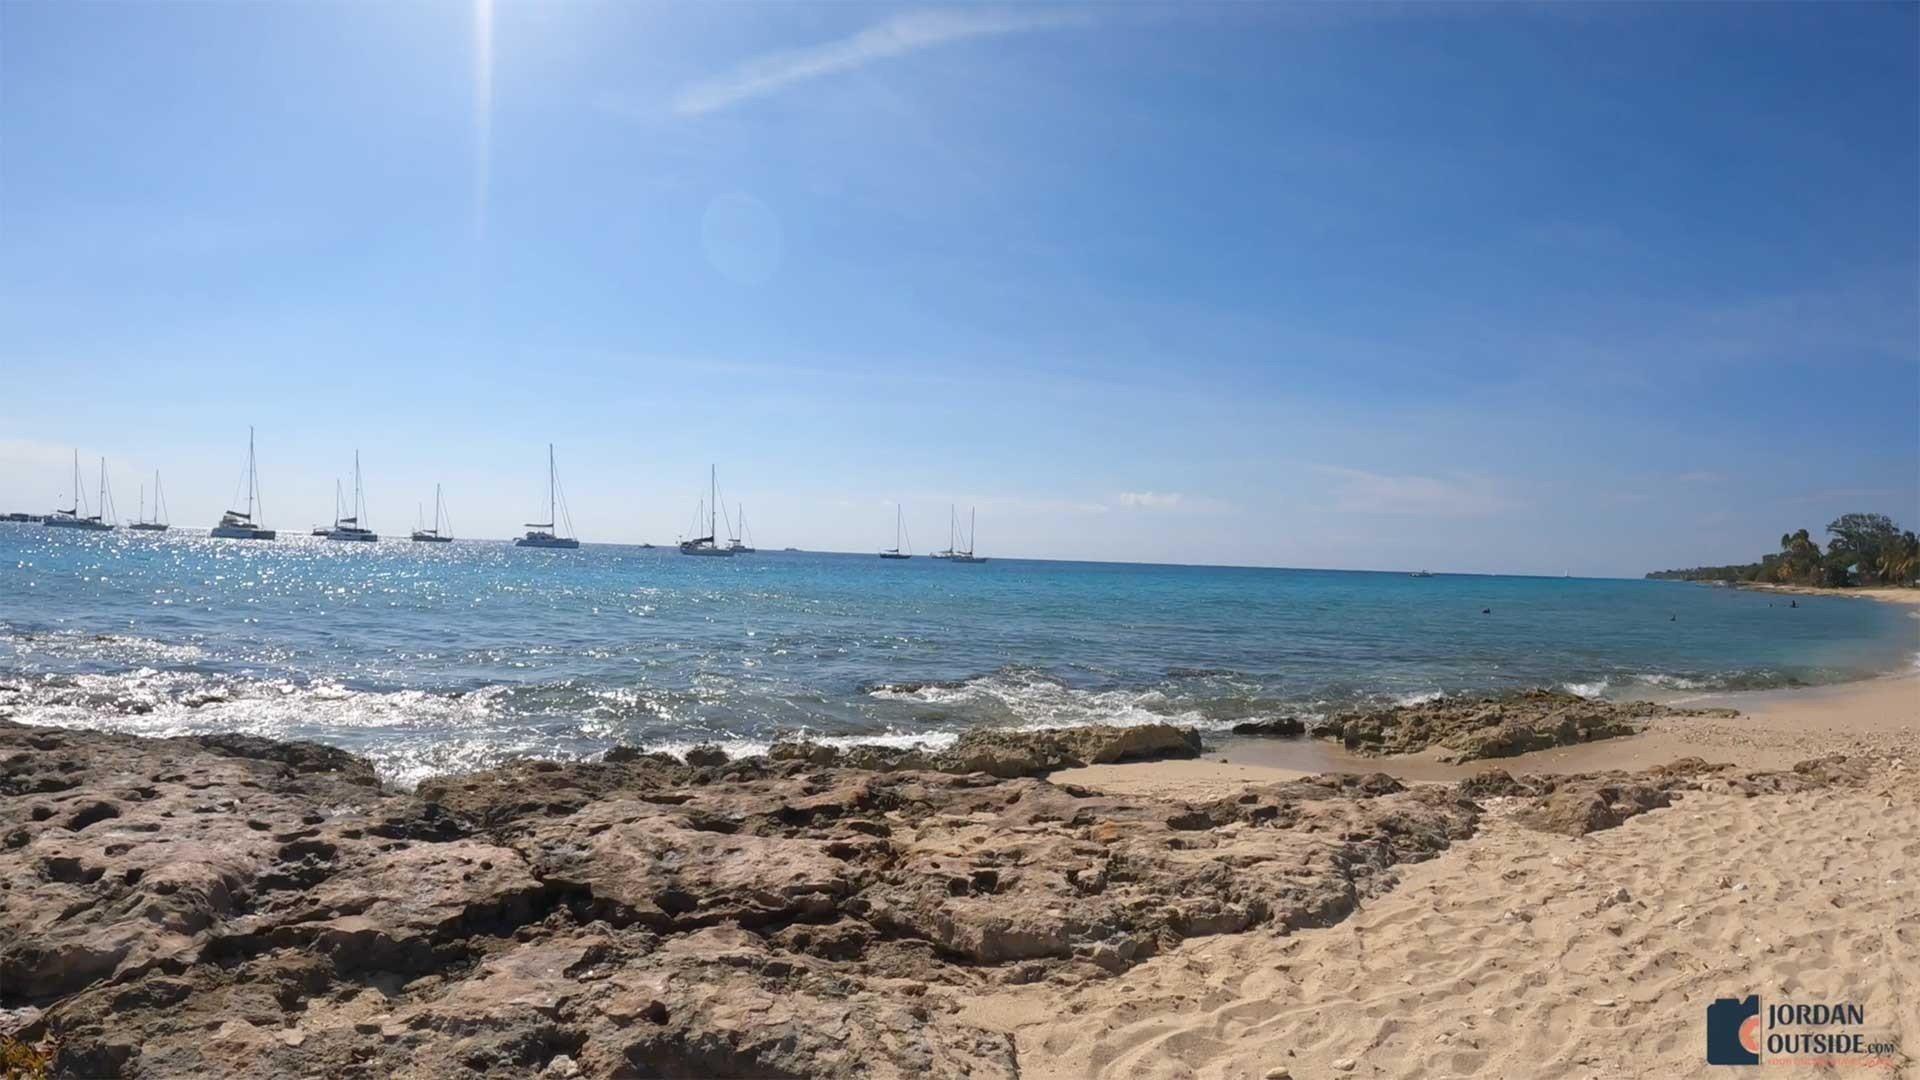 The end of Frederiksted Beach, St. Croix